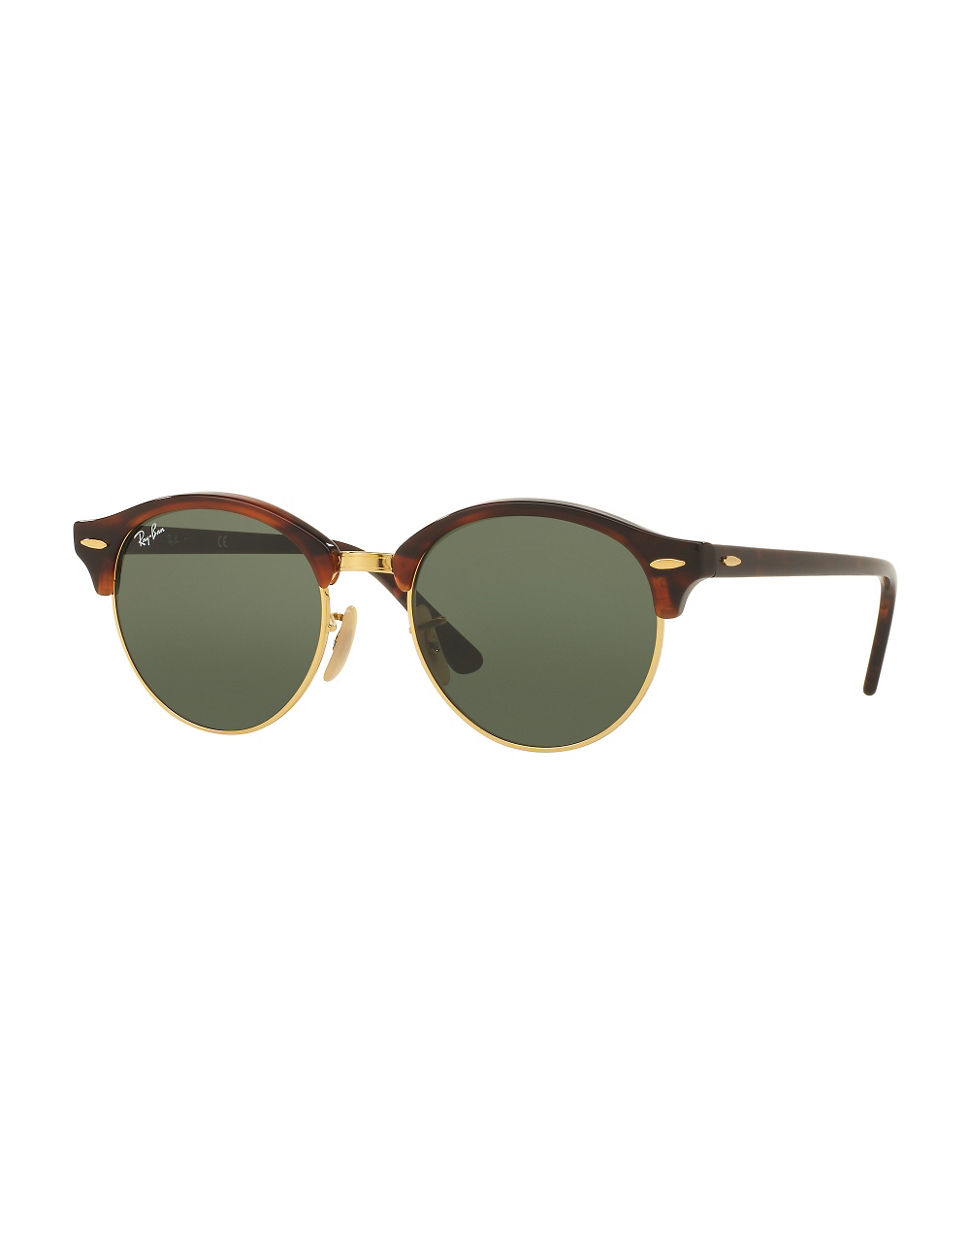 Ray Ban Glasses Frames Green : Ray-ban 51mm Havana Clubround Sunglasses in Green Lyst